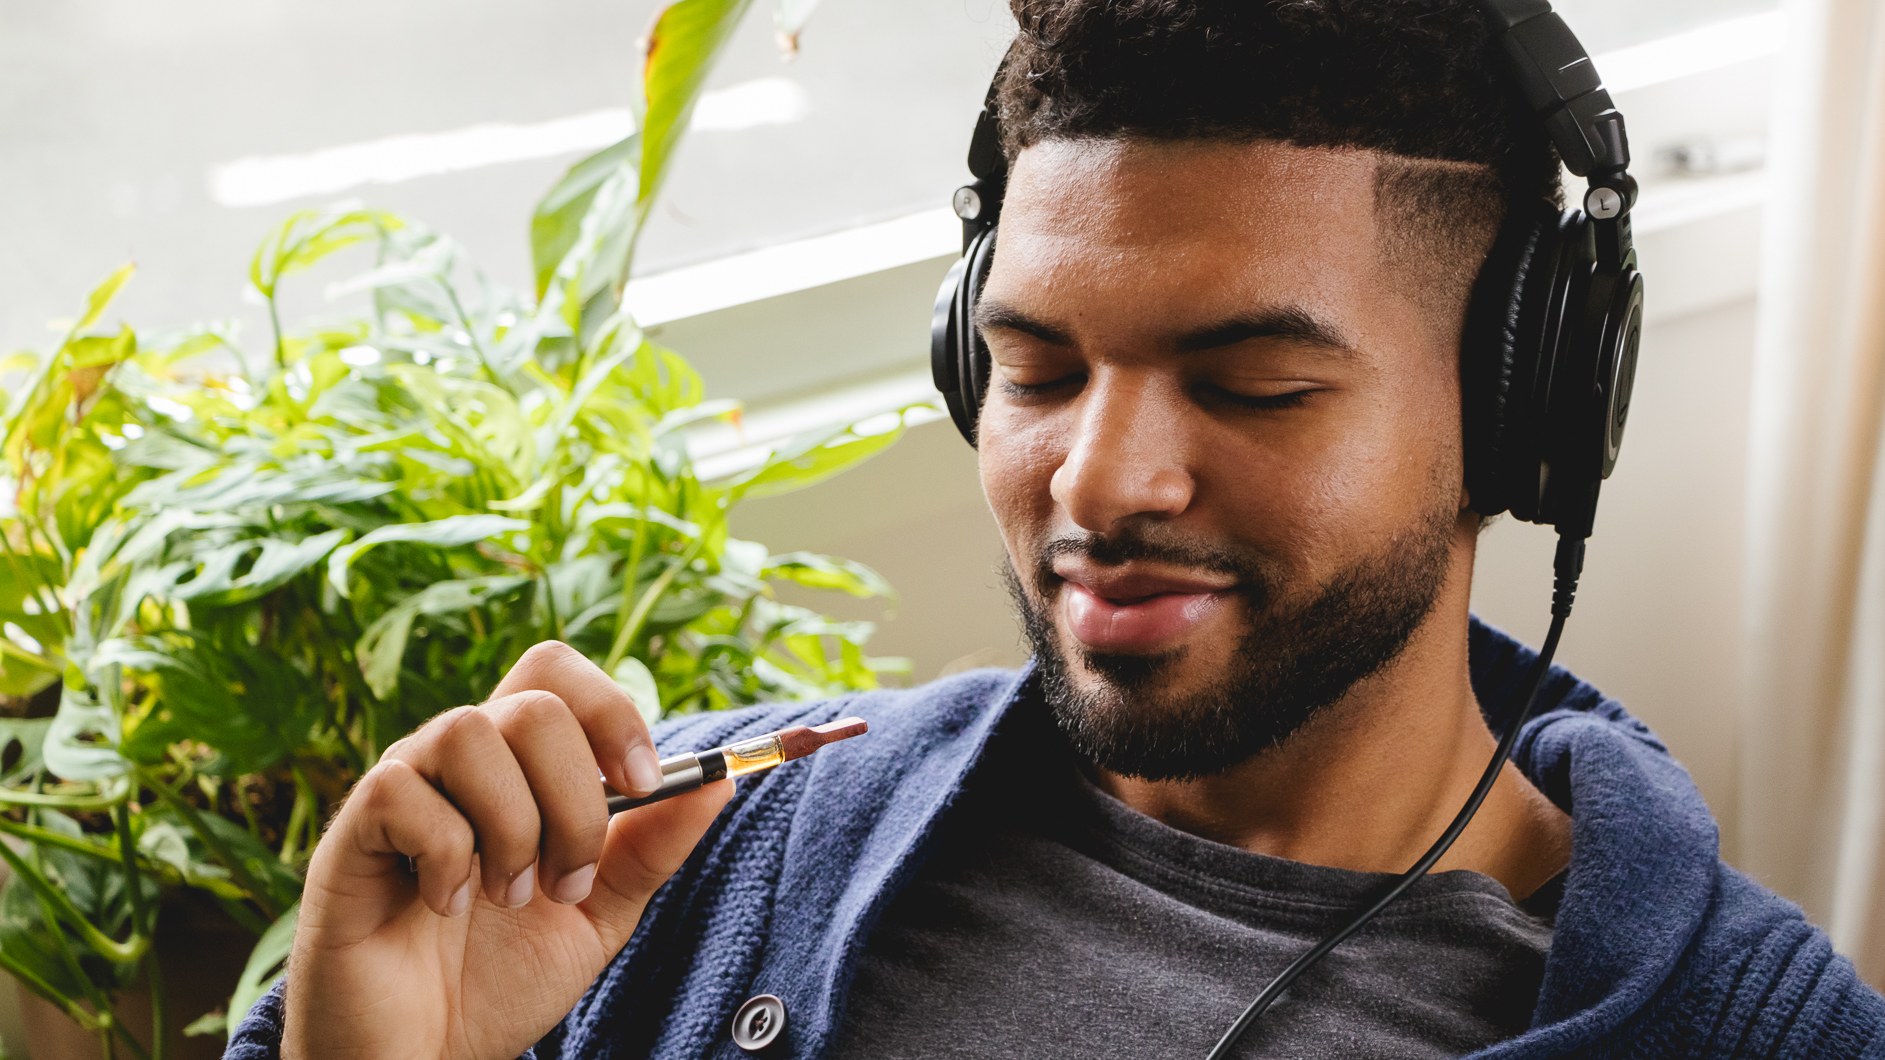 Image of a man listening to music while holding a marijuana vaporizer